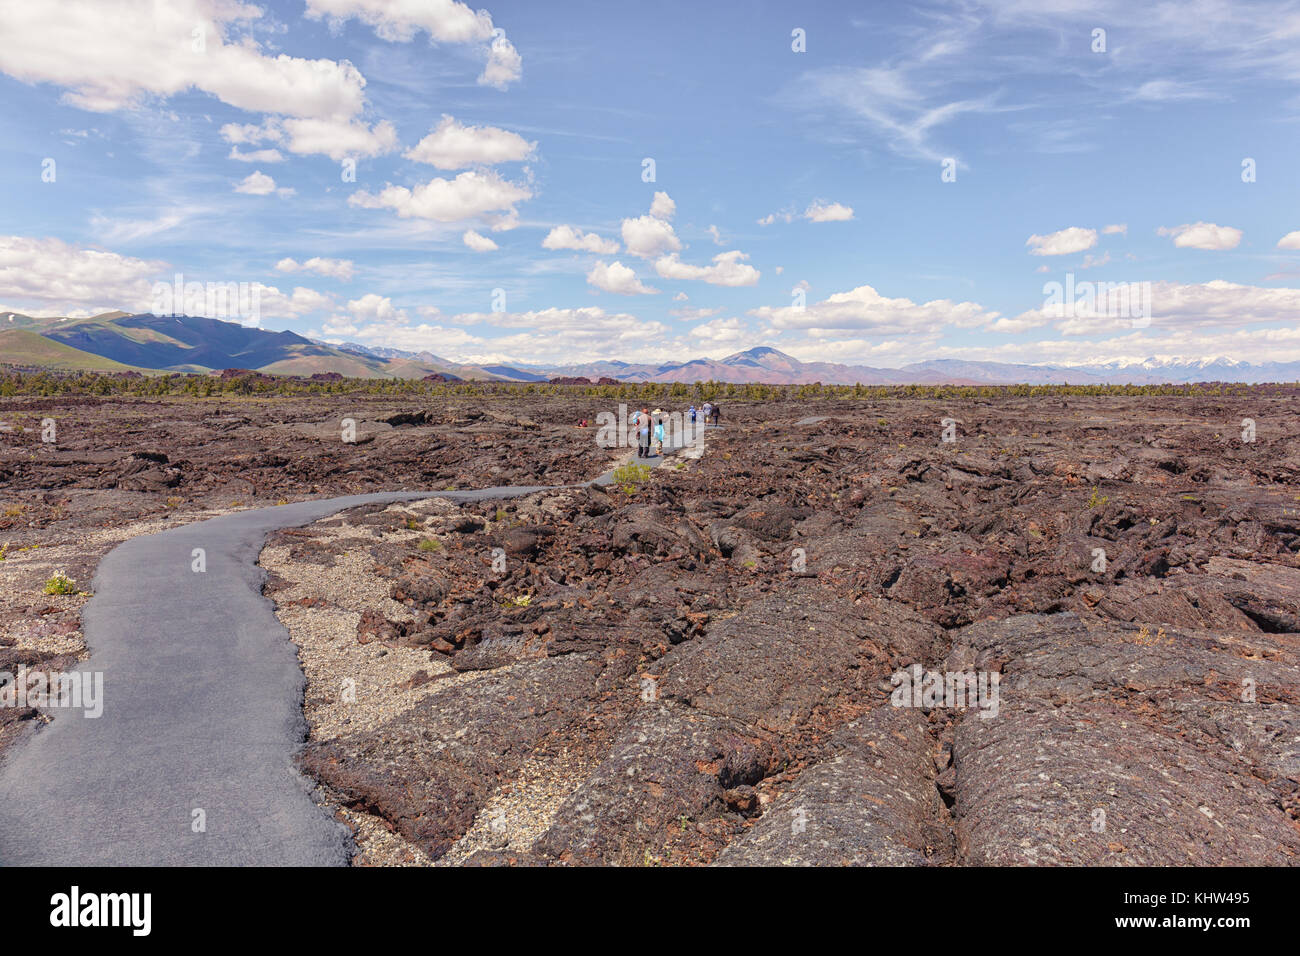 Tourists are hiking on an asphalt path on top of the lave flows of Craters of the Moon National Monument & Preserve Stock Photo